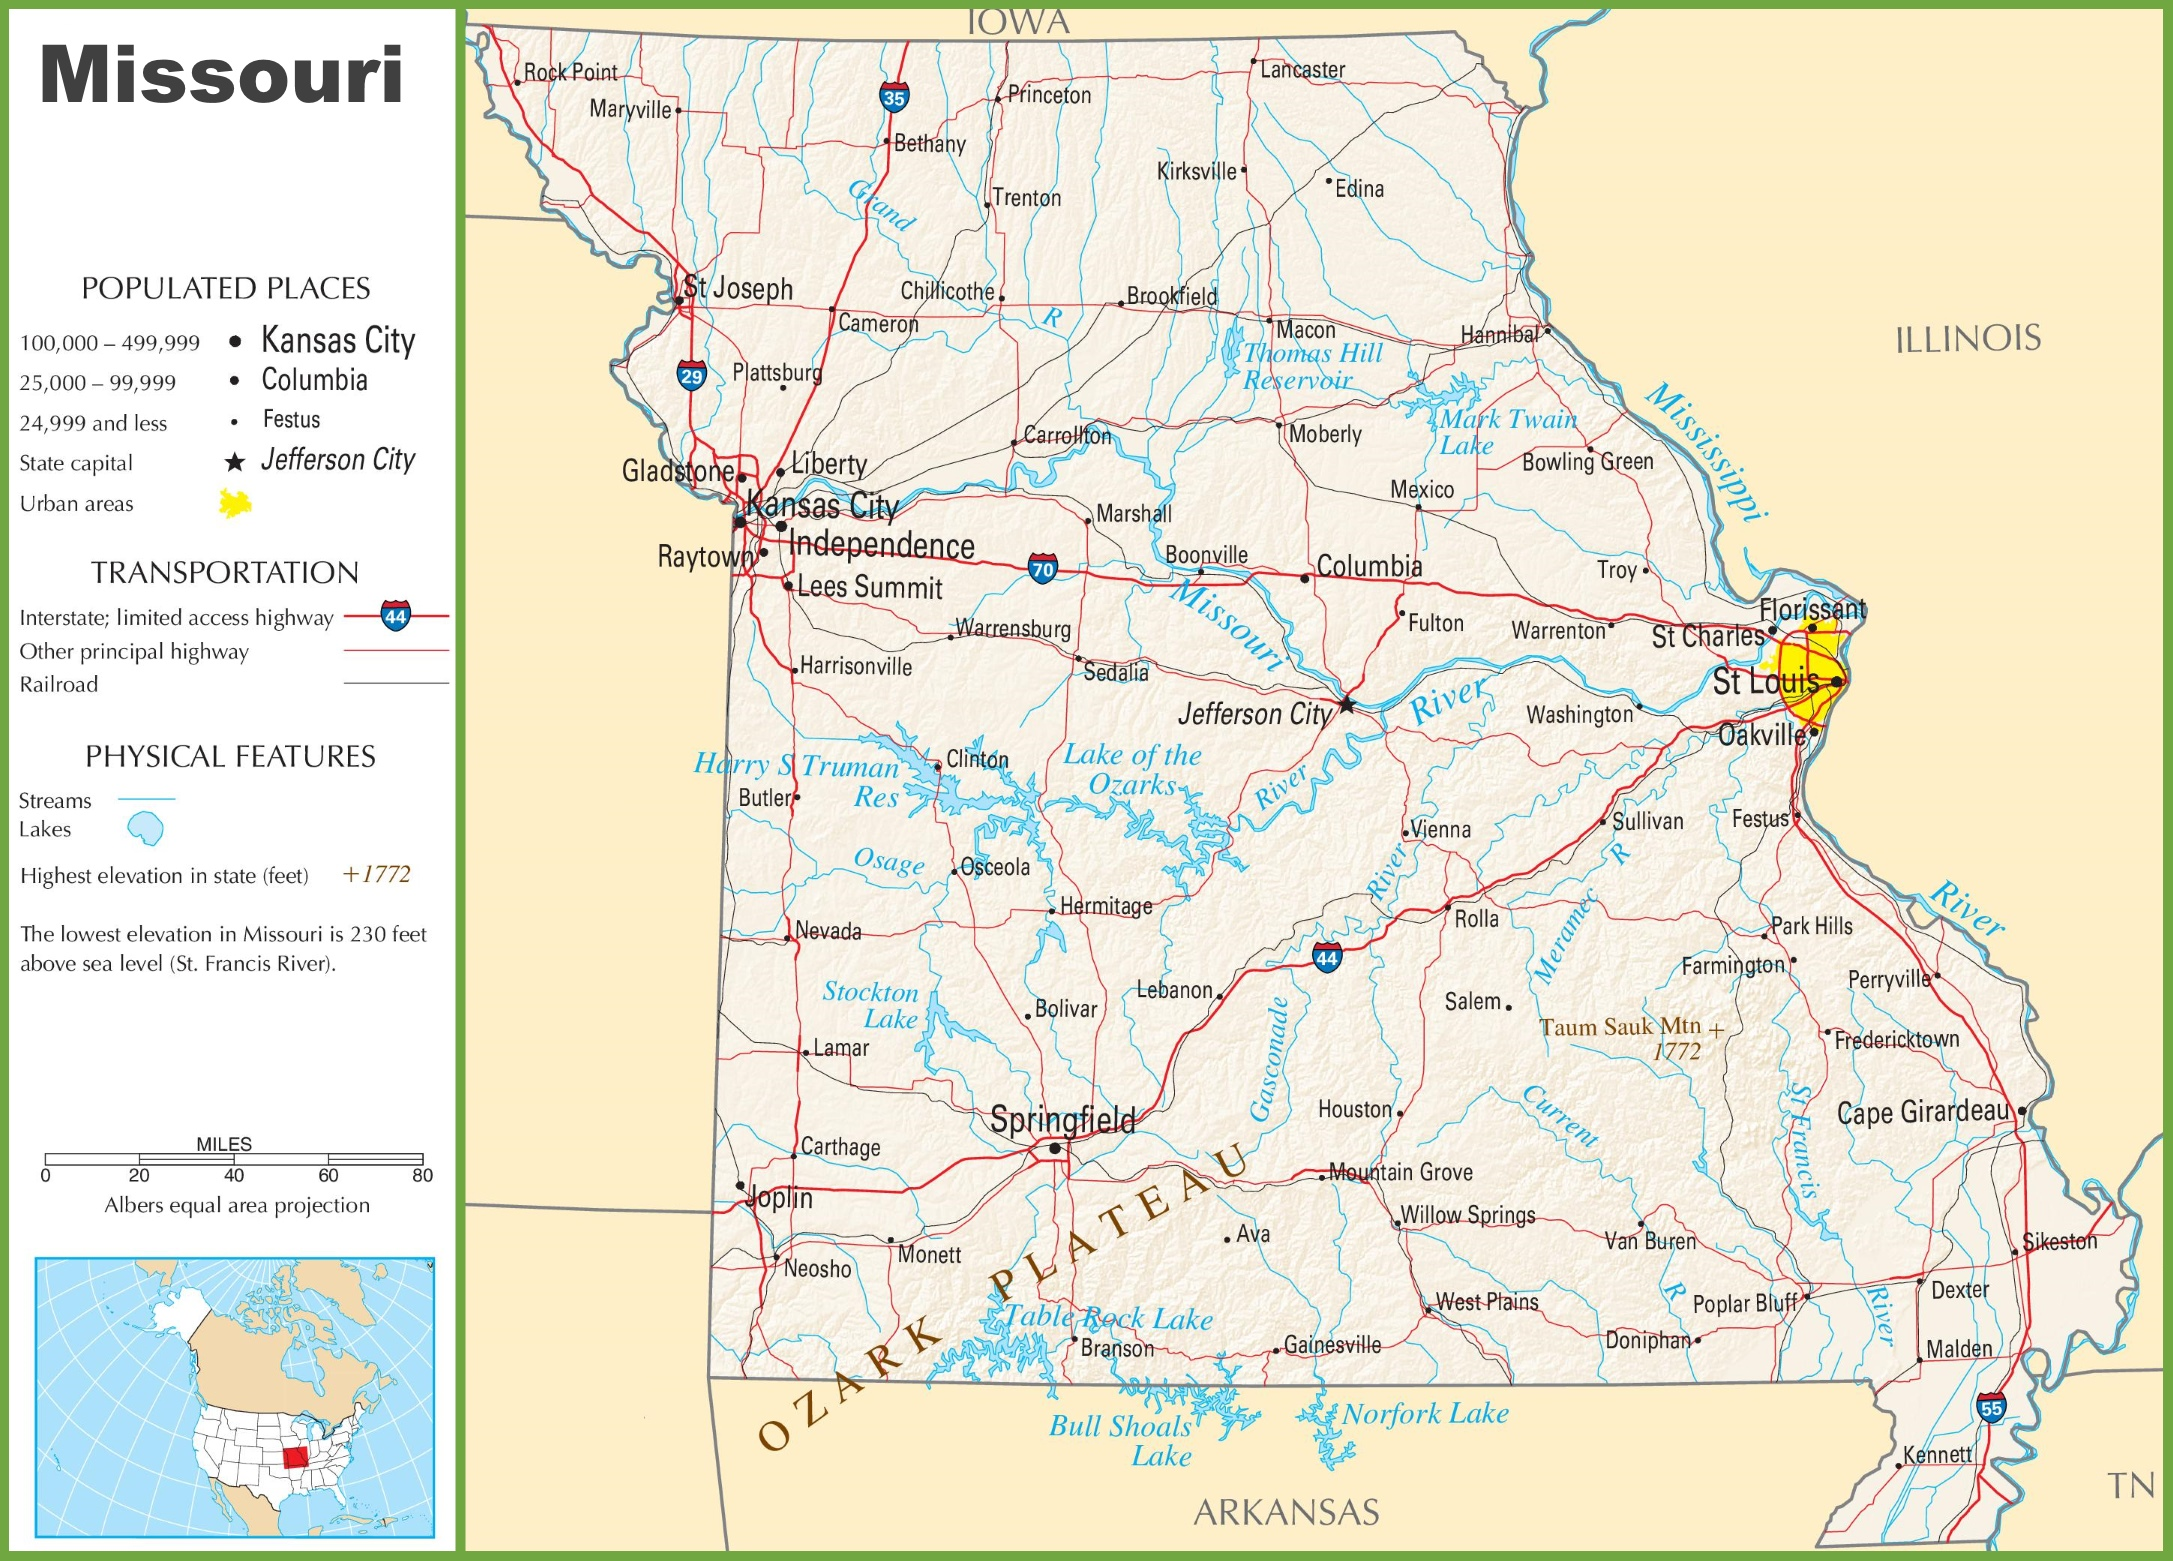 Missouri Highway Map - Mossouri map